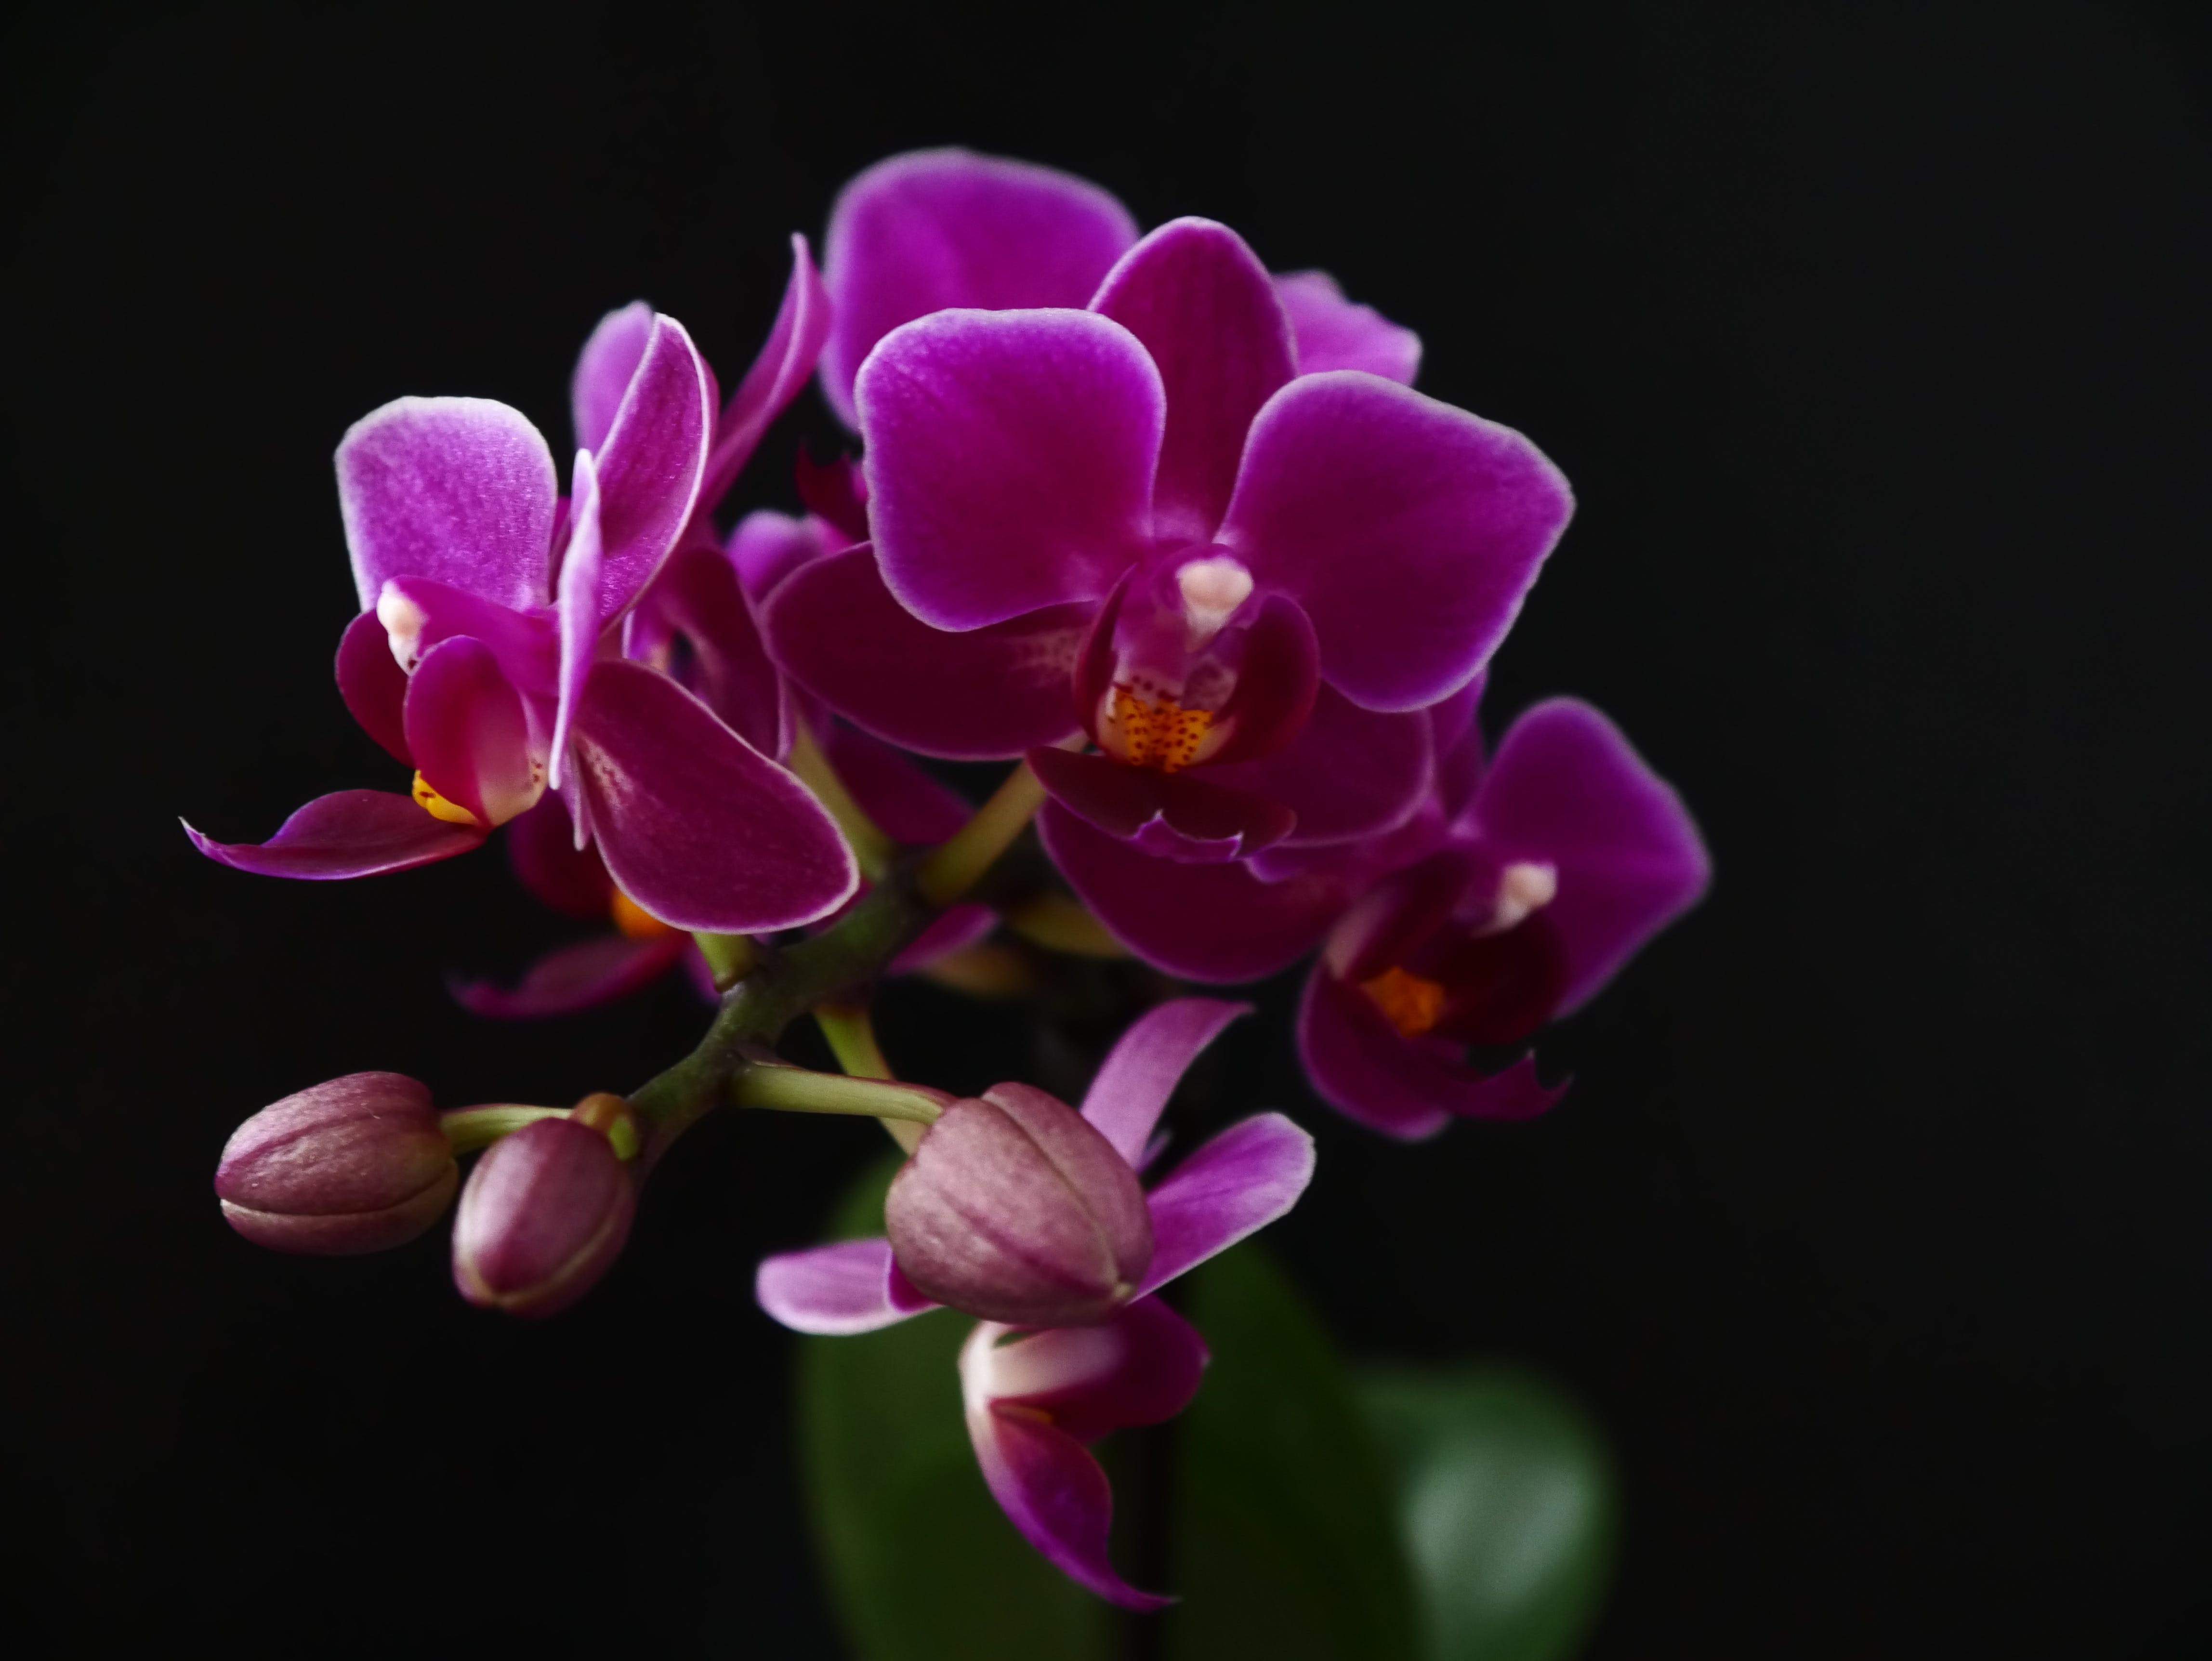 Free stock photo of flower, flowering plant, orchid, purple